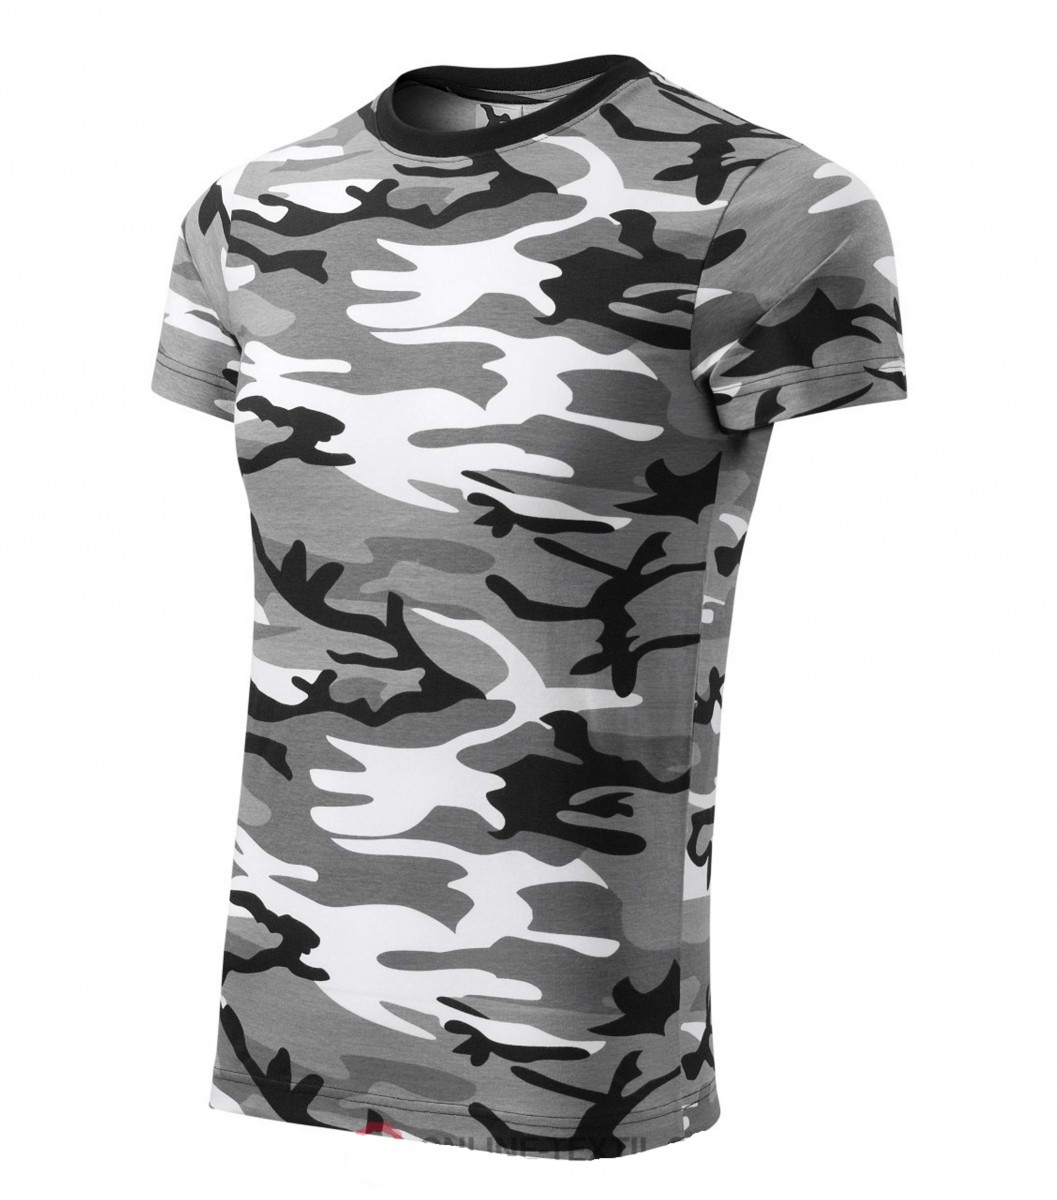 Trička pro páry King and Queen 065 Camouflage Gray. ZOBRAZIT DETAIL ·  ZOBRAZIT DETAIL deeabf230c